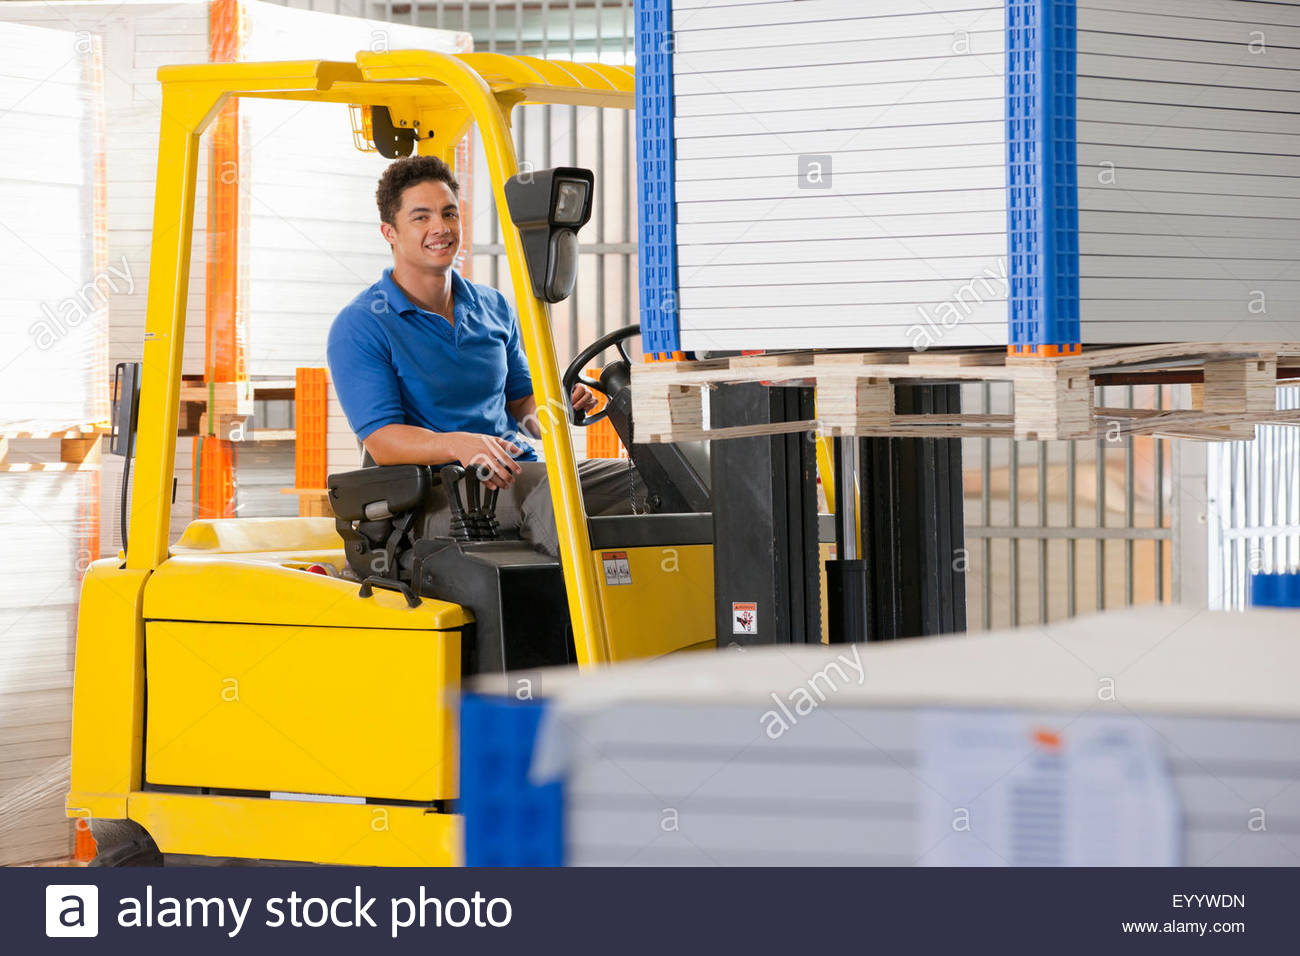 Forklift truck driver smiling at camera stacking solar panels in factory warehouse - Stock Image